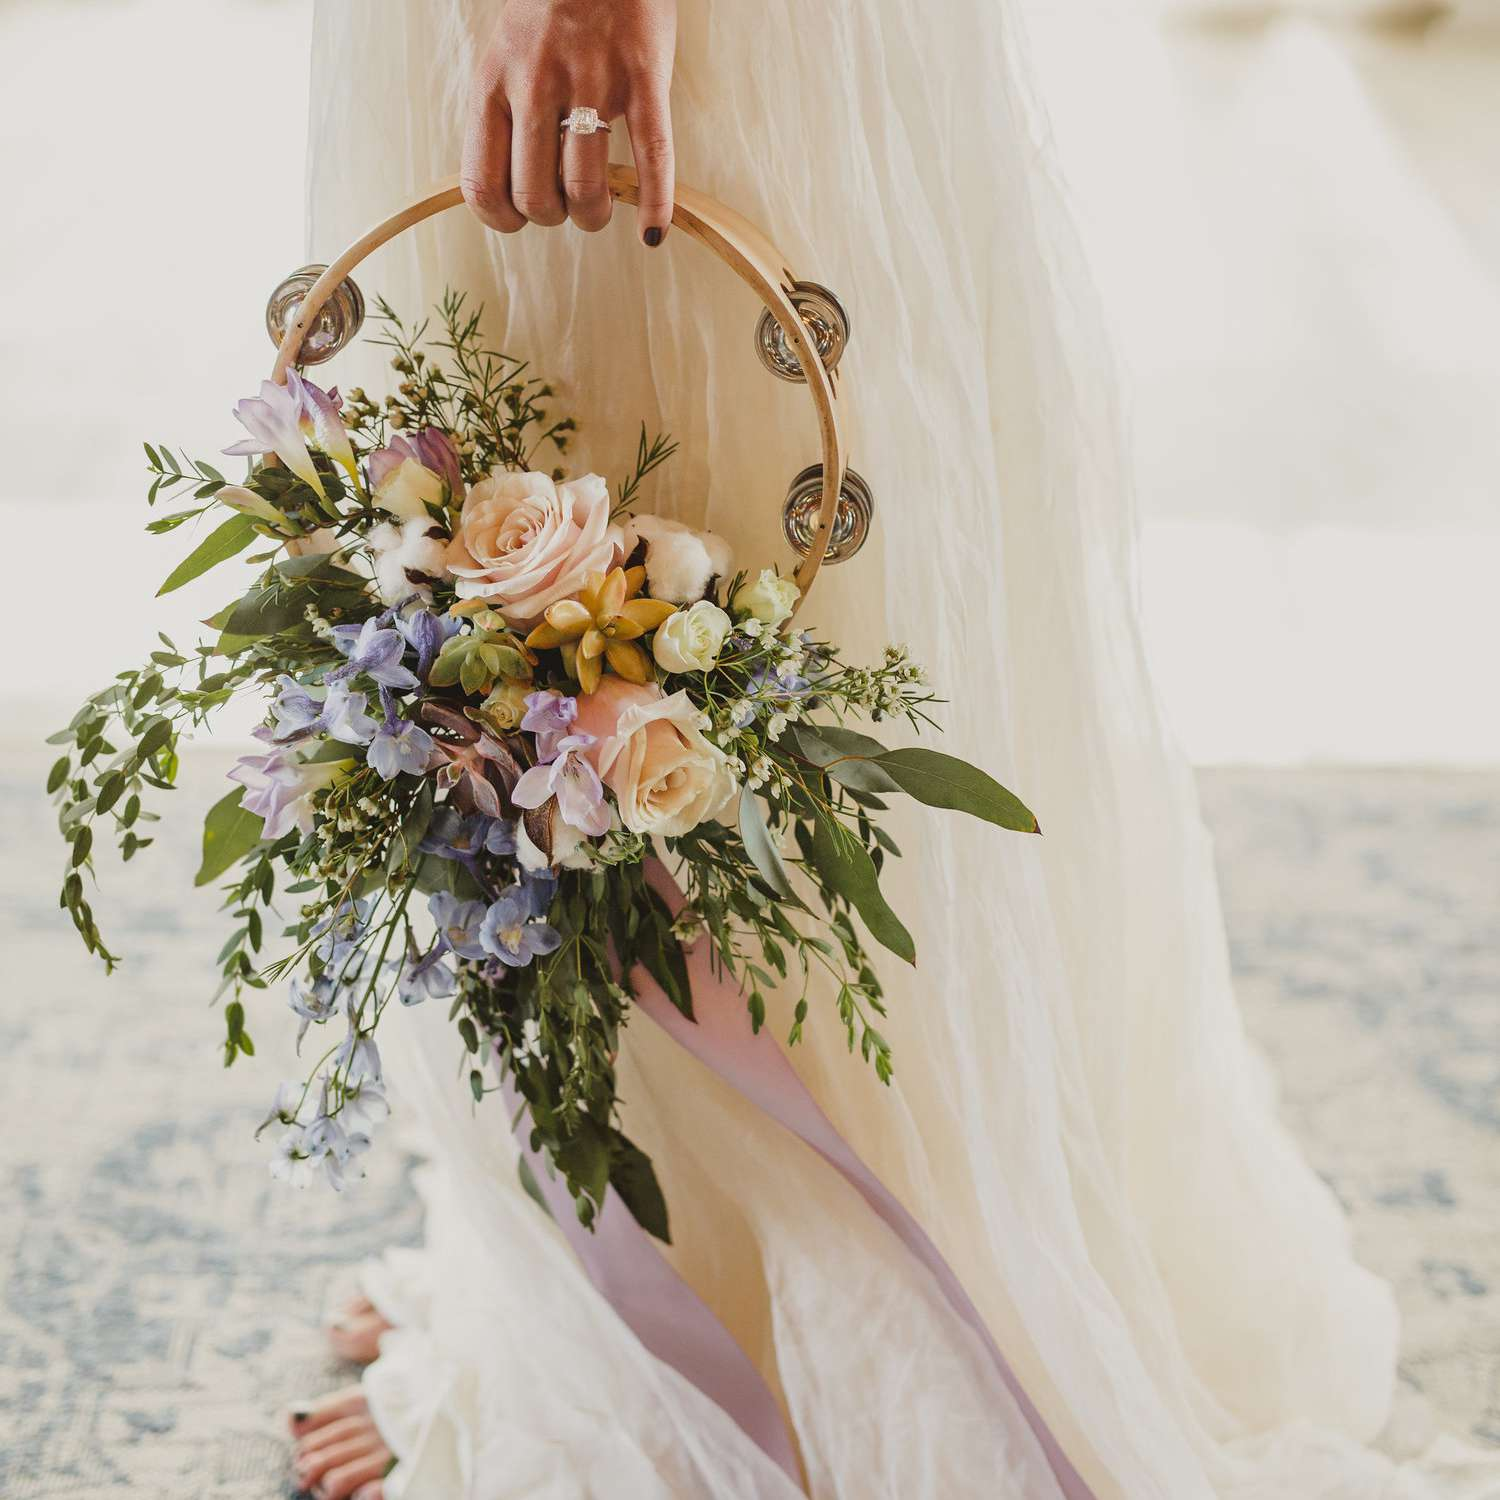 15 Hoop Bouquet Ideas For Brides And Bridesmaids